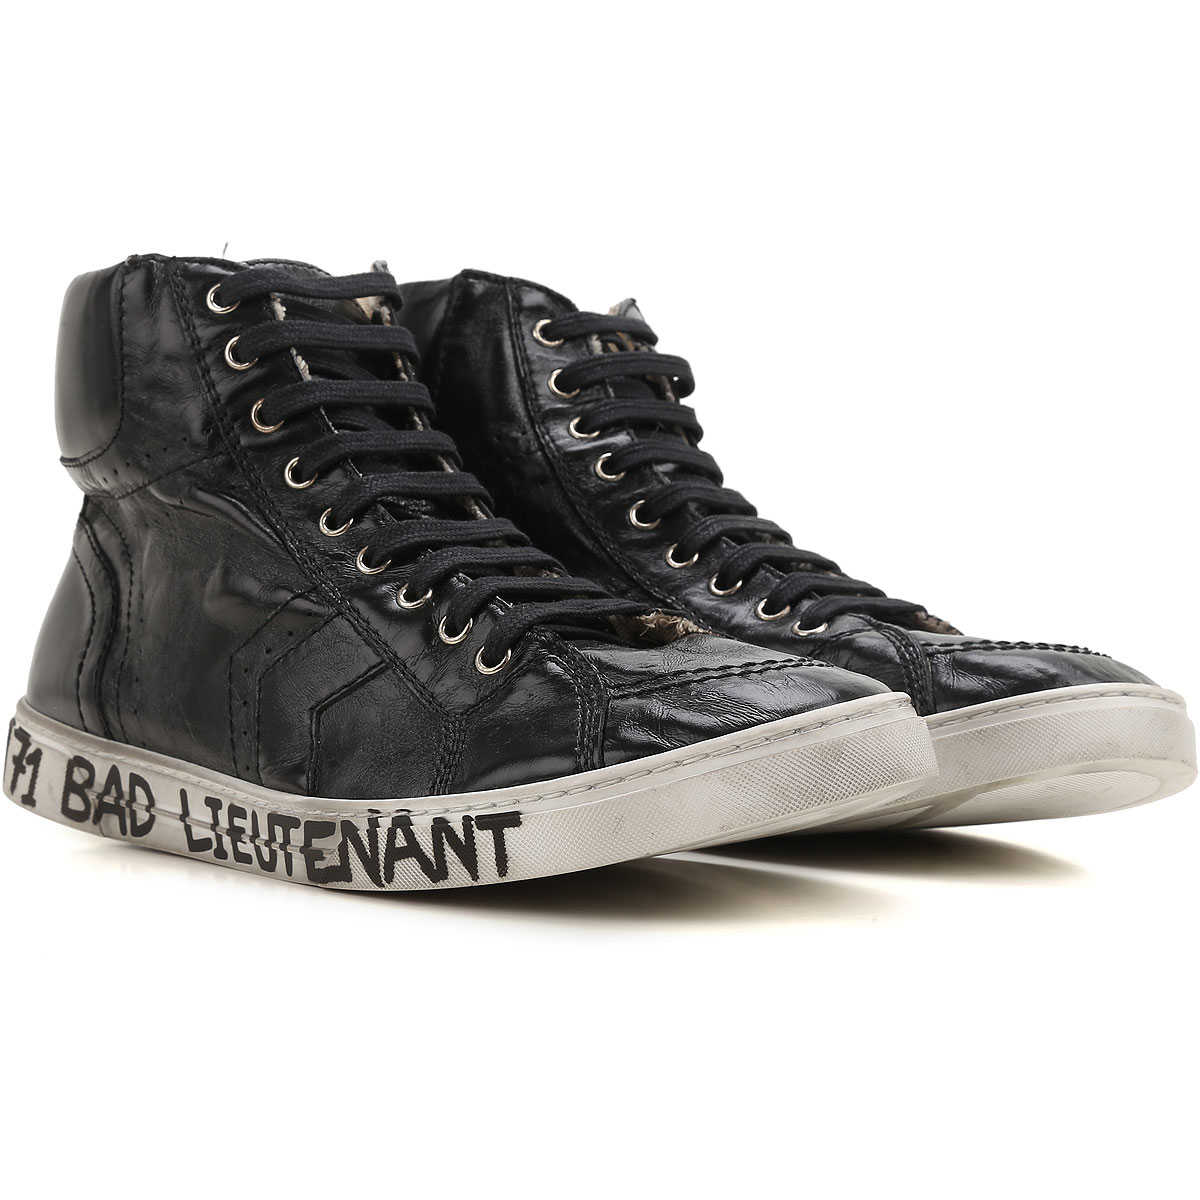 Yves Saint Laurent Sneakers for Men On Sale in Outlet